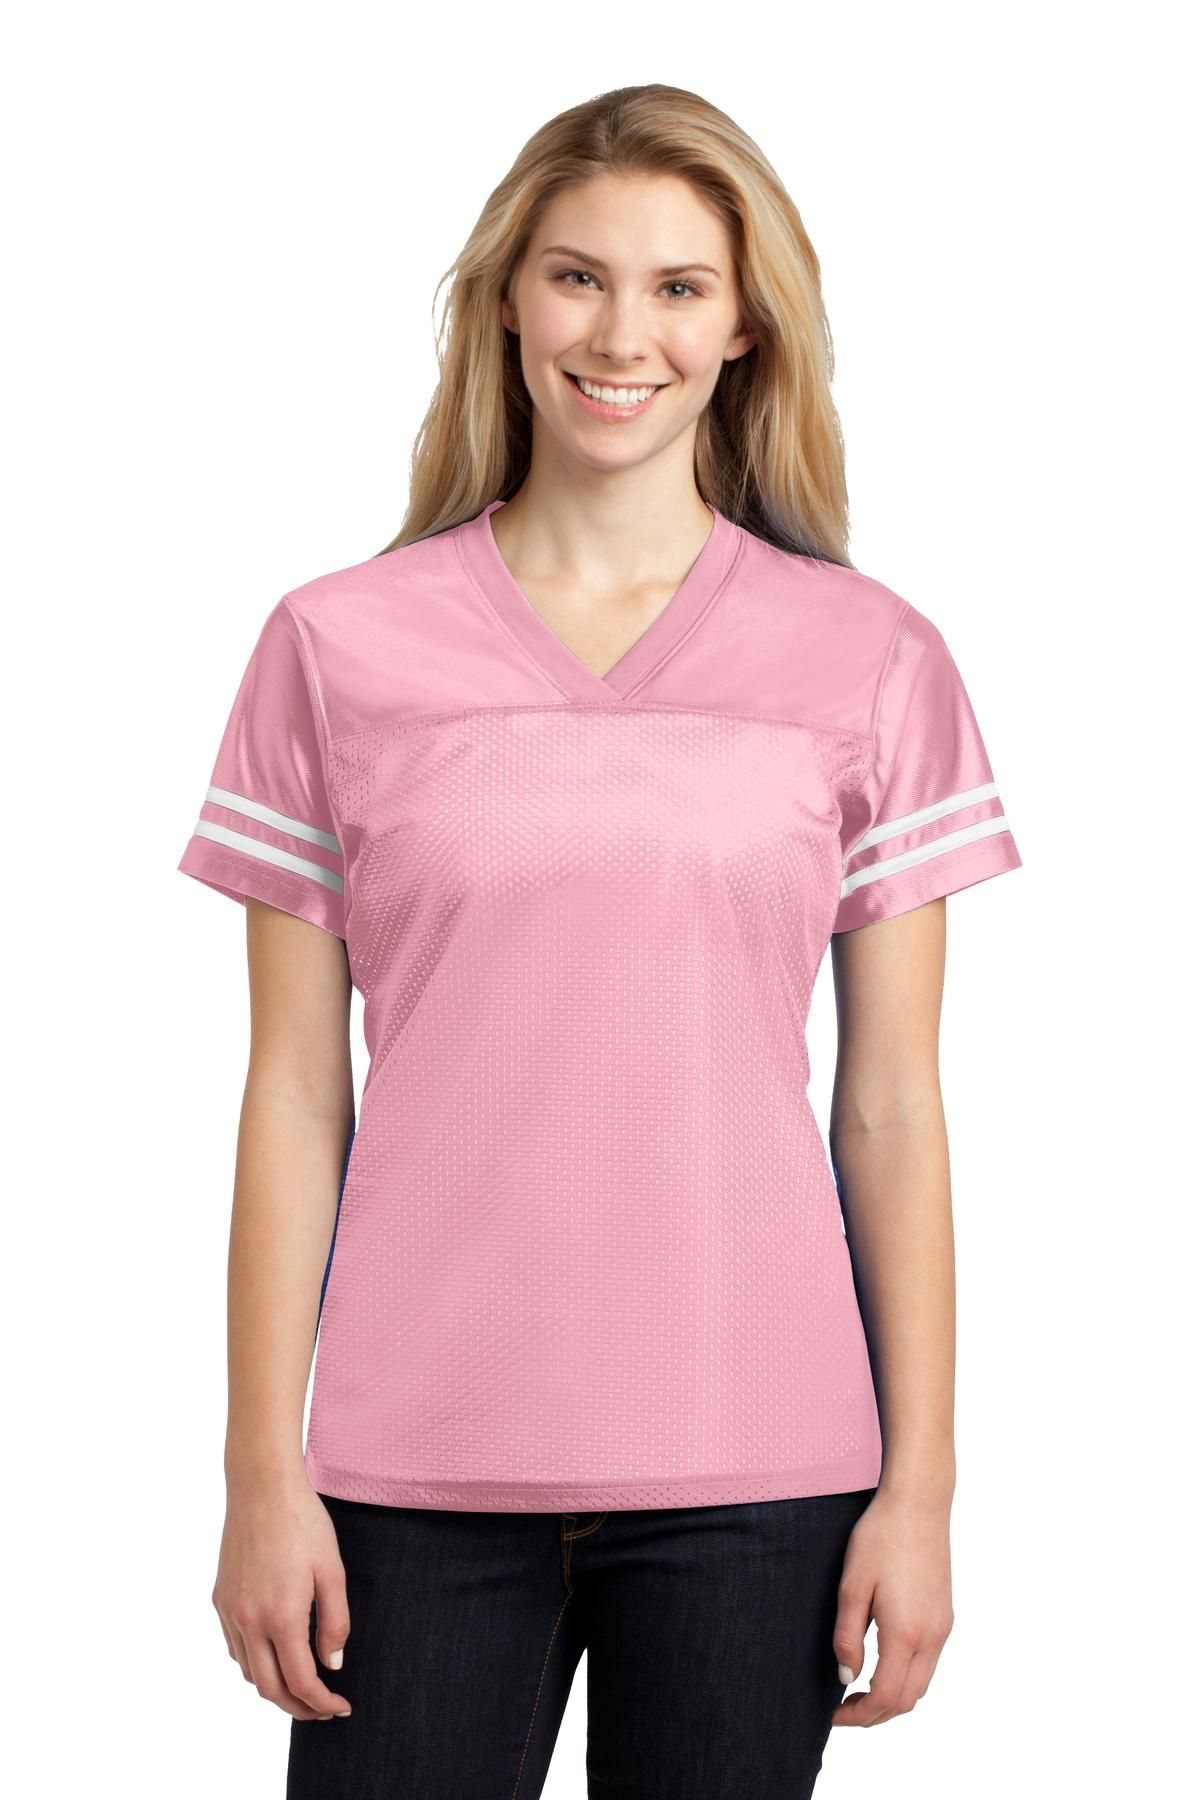 0b699458b0e SanMar - Wholesale Imprintable Apparel & Accessories Bowling Shirts,  Sales And Marketing, Breast